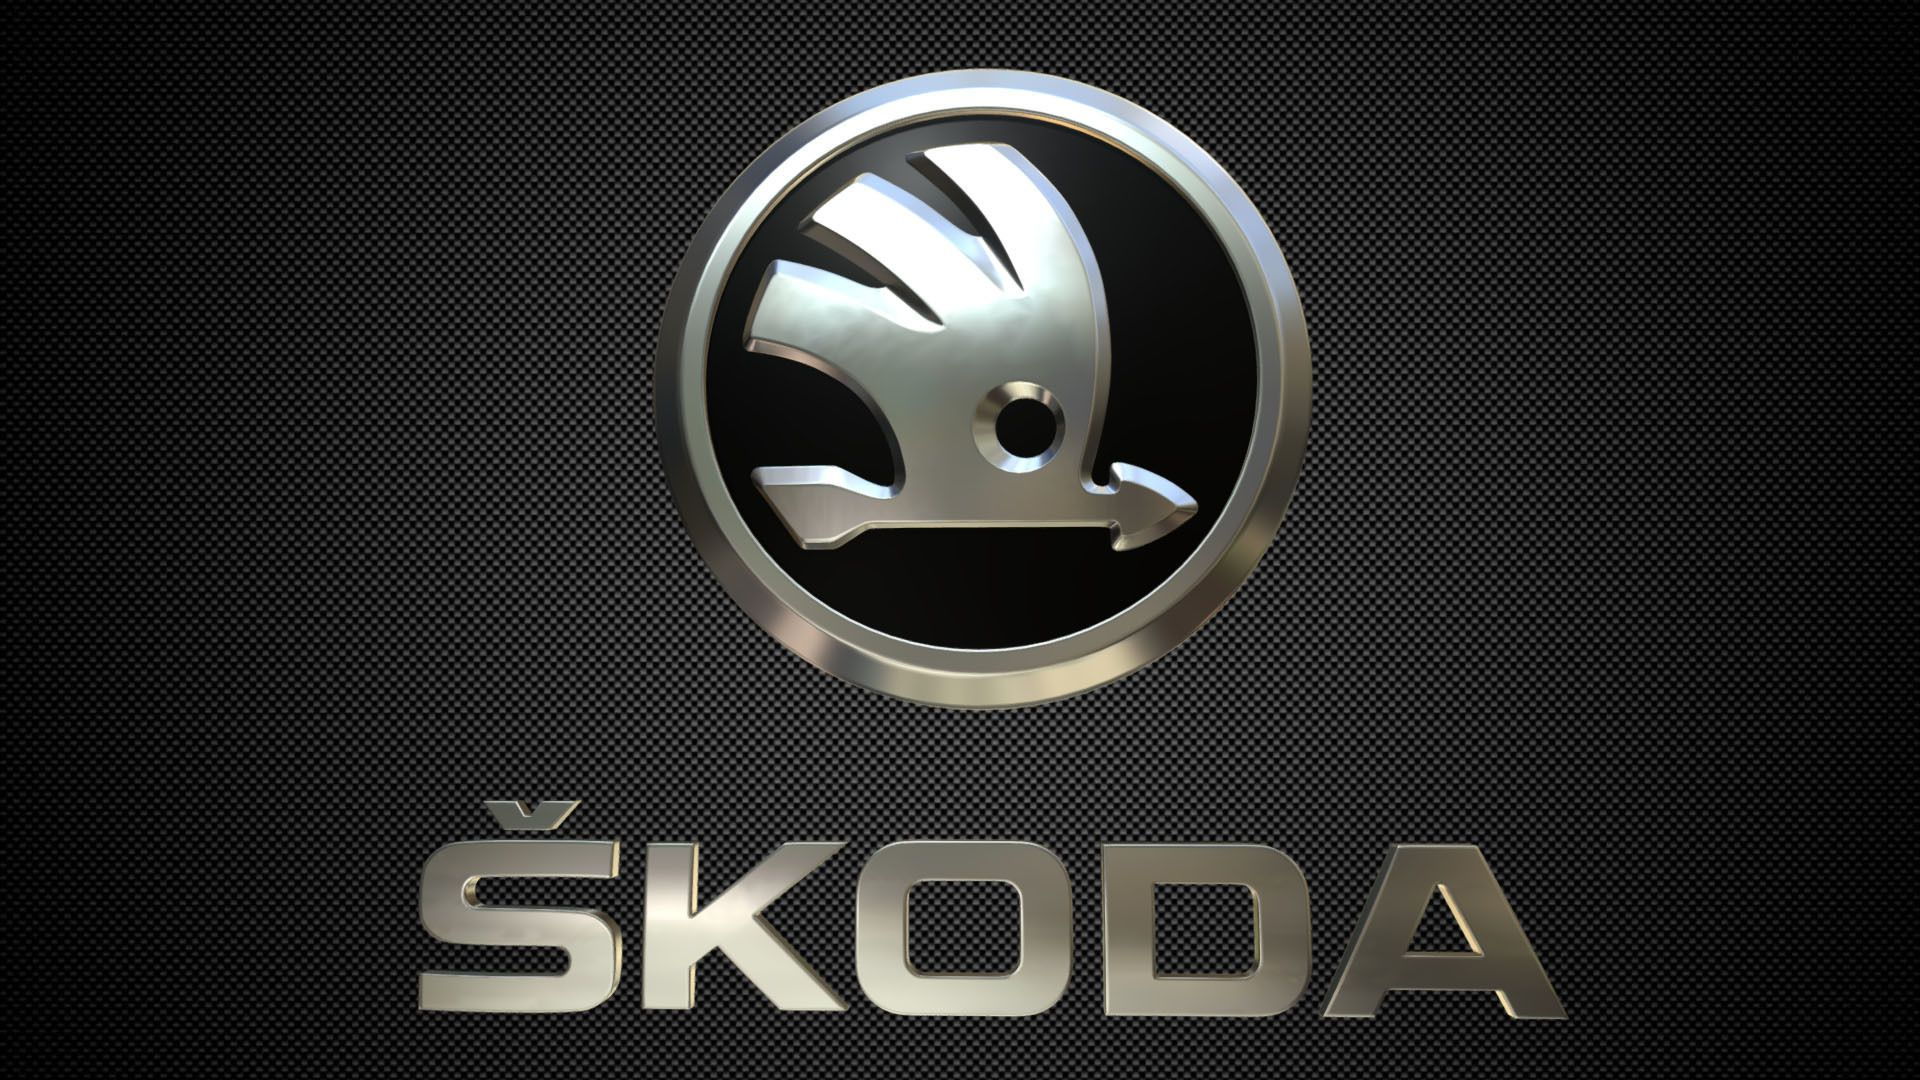 skoda logo 2019 Google Search Skoda, Luxury car logos